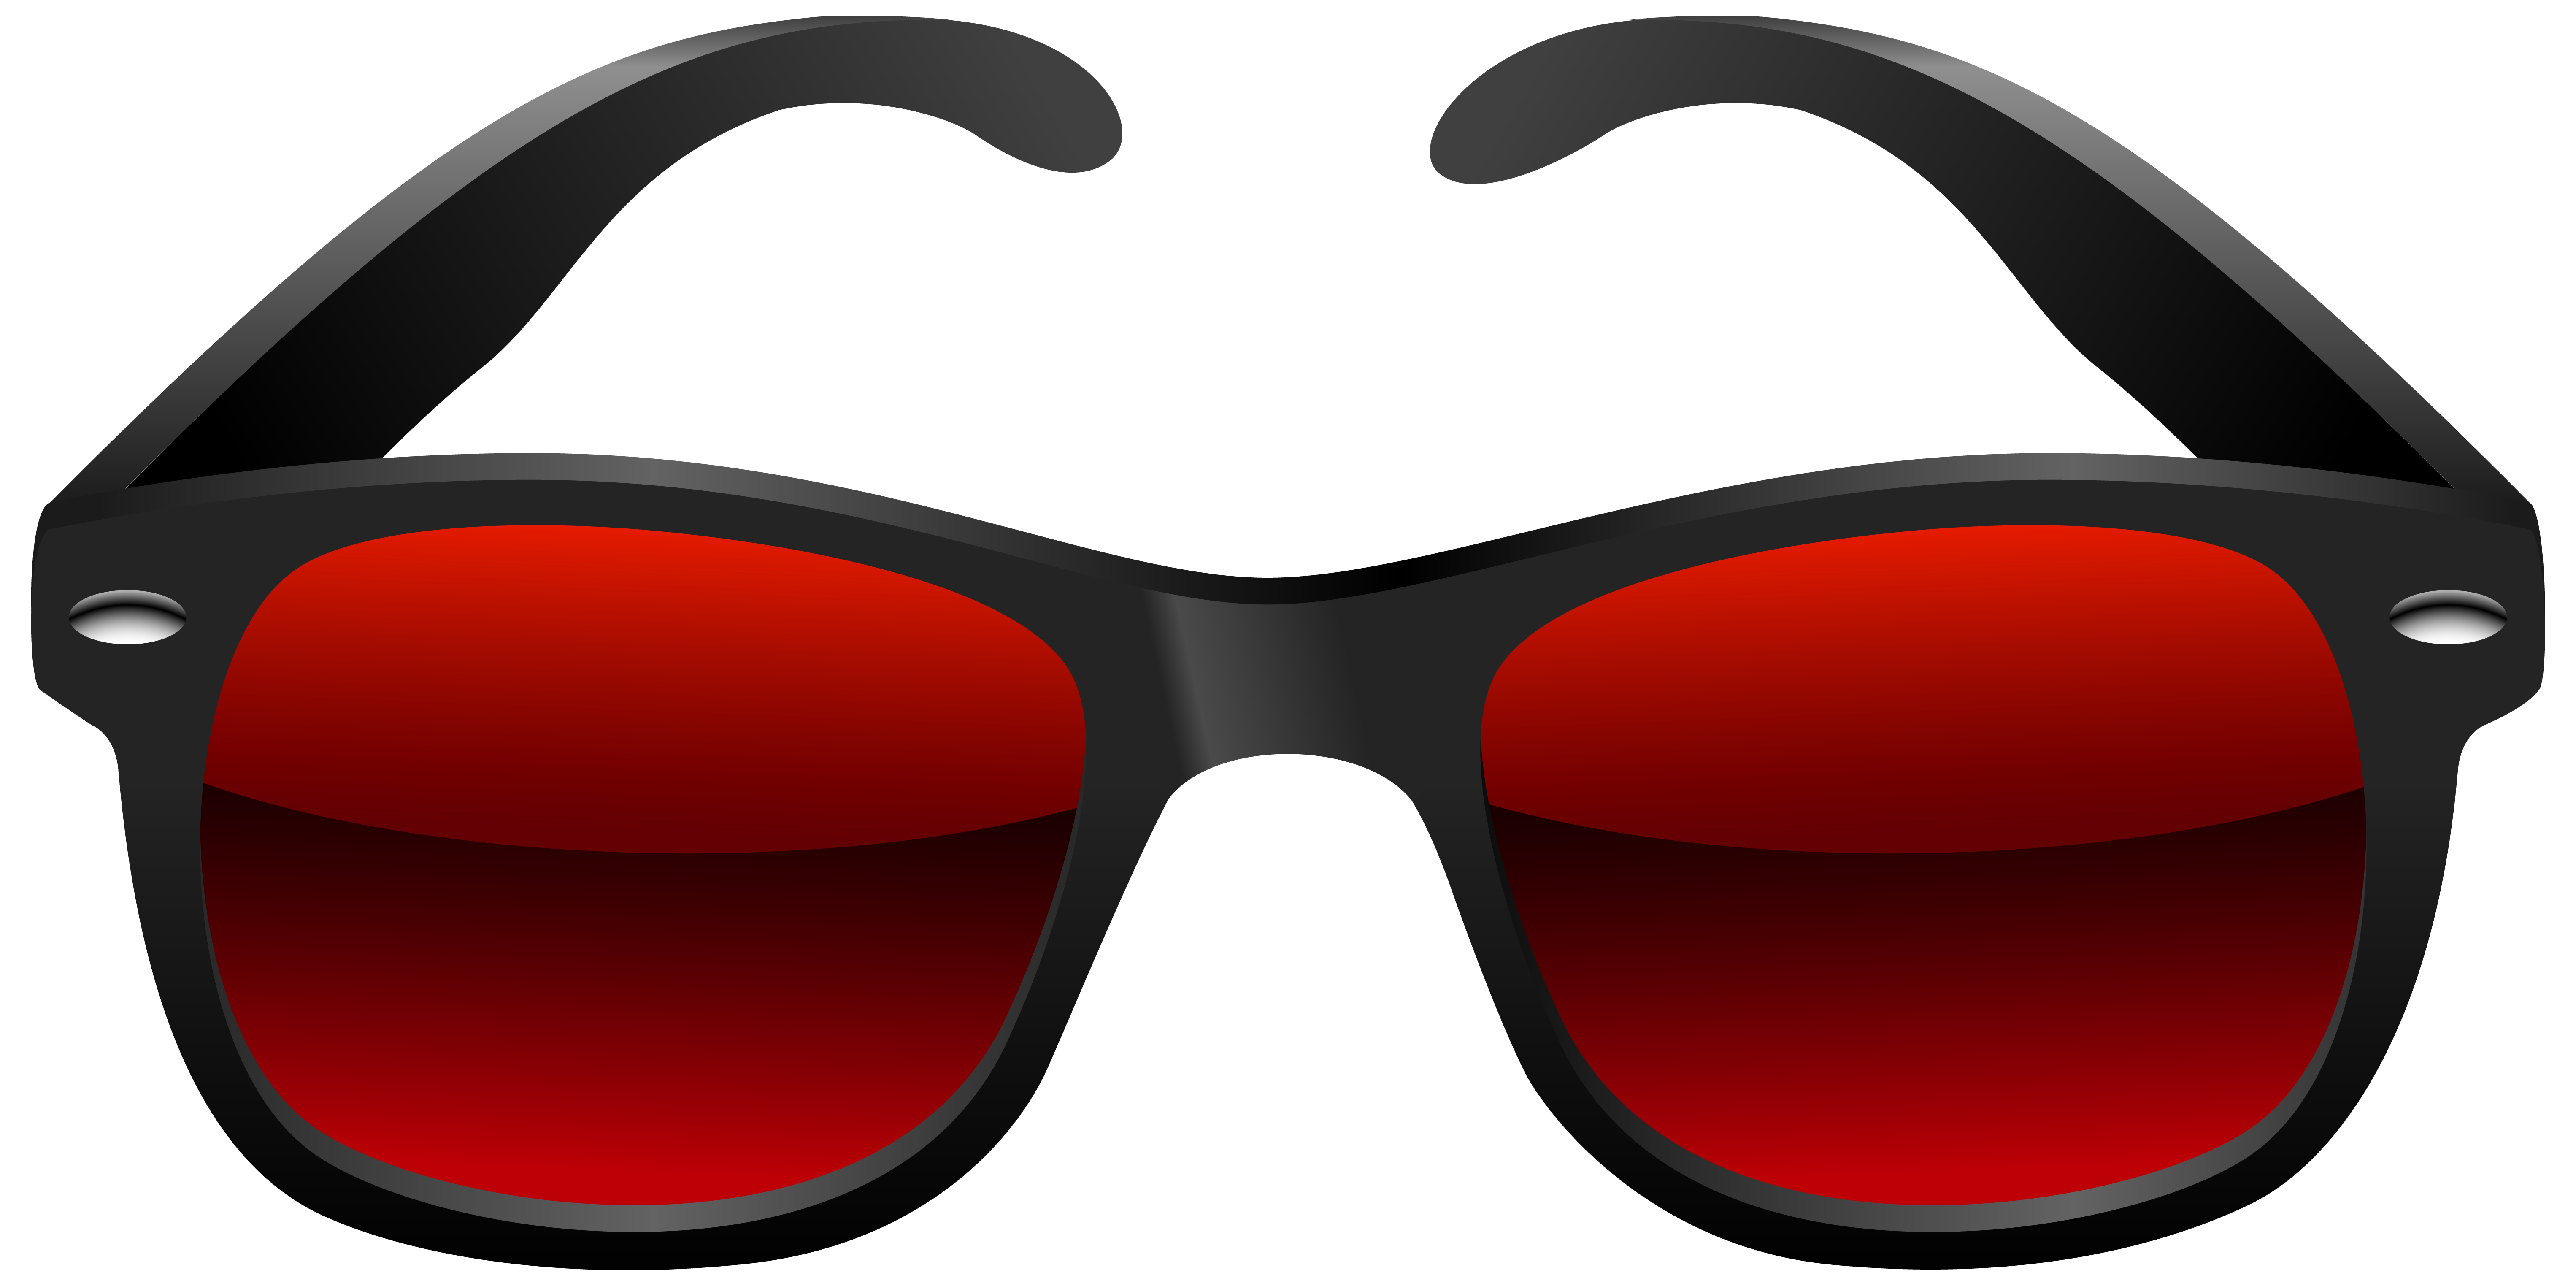 Sun glasses clipart freeuse download Black and Red Sunglasses PNG Clipart Image | Gallery Yopriceville ... freeuse download